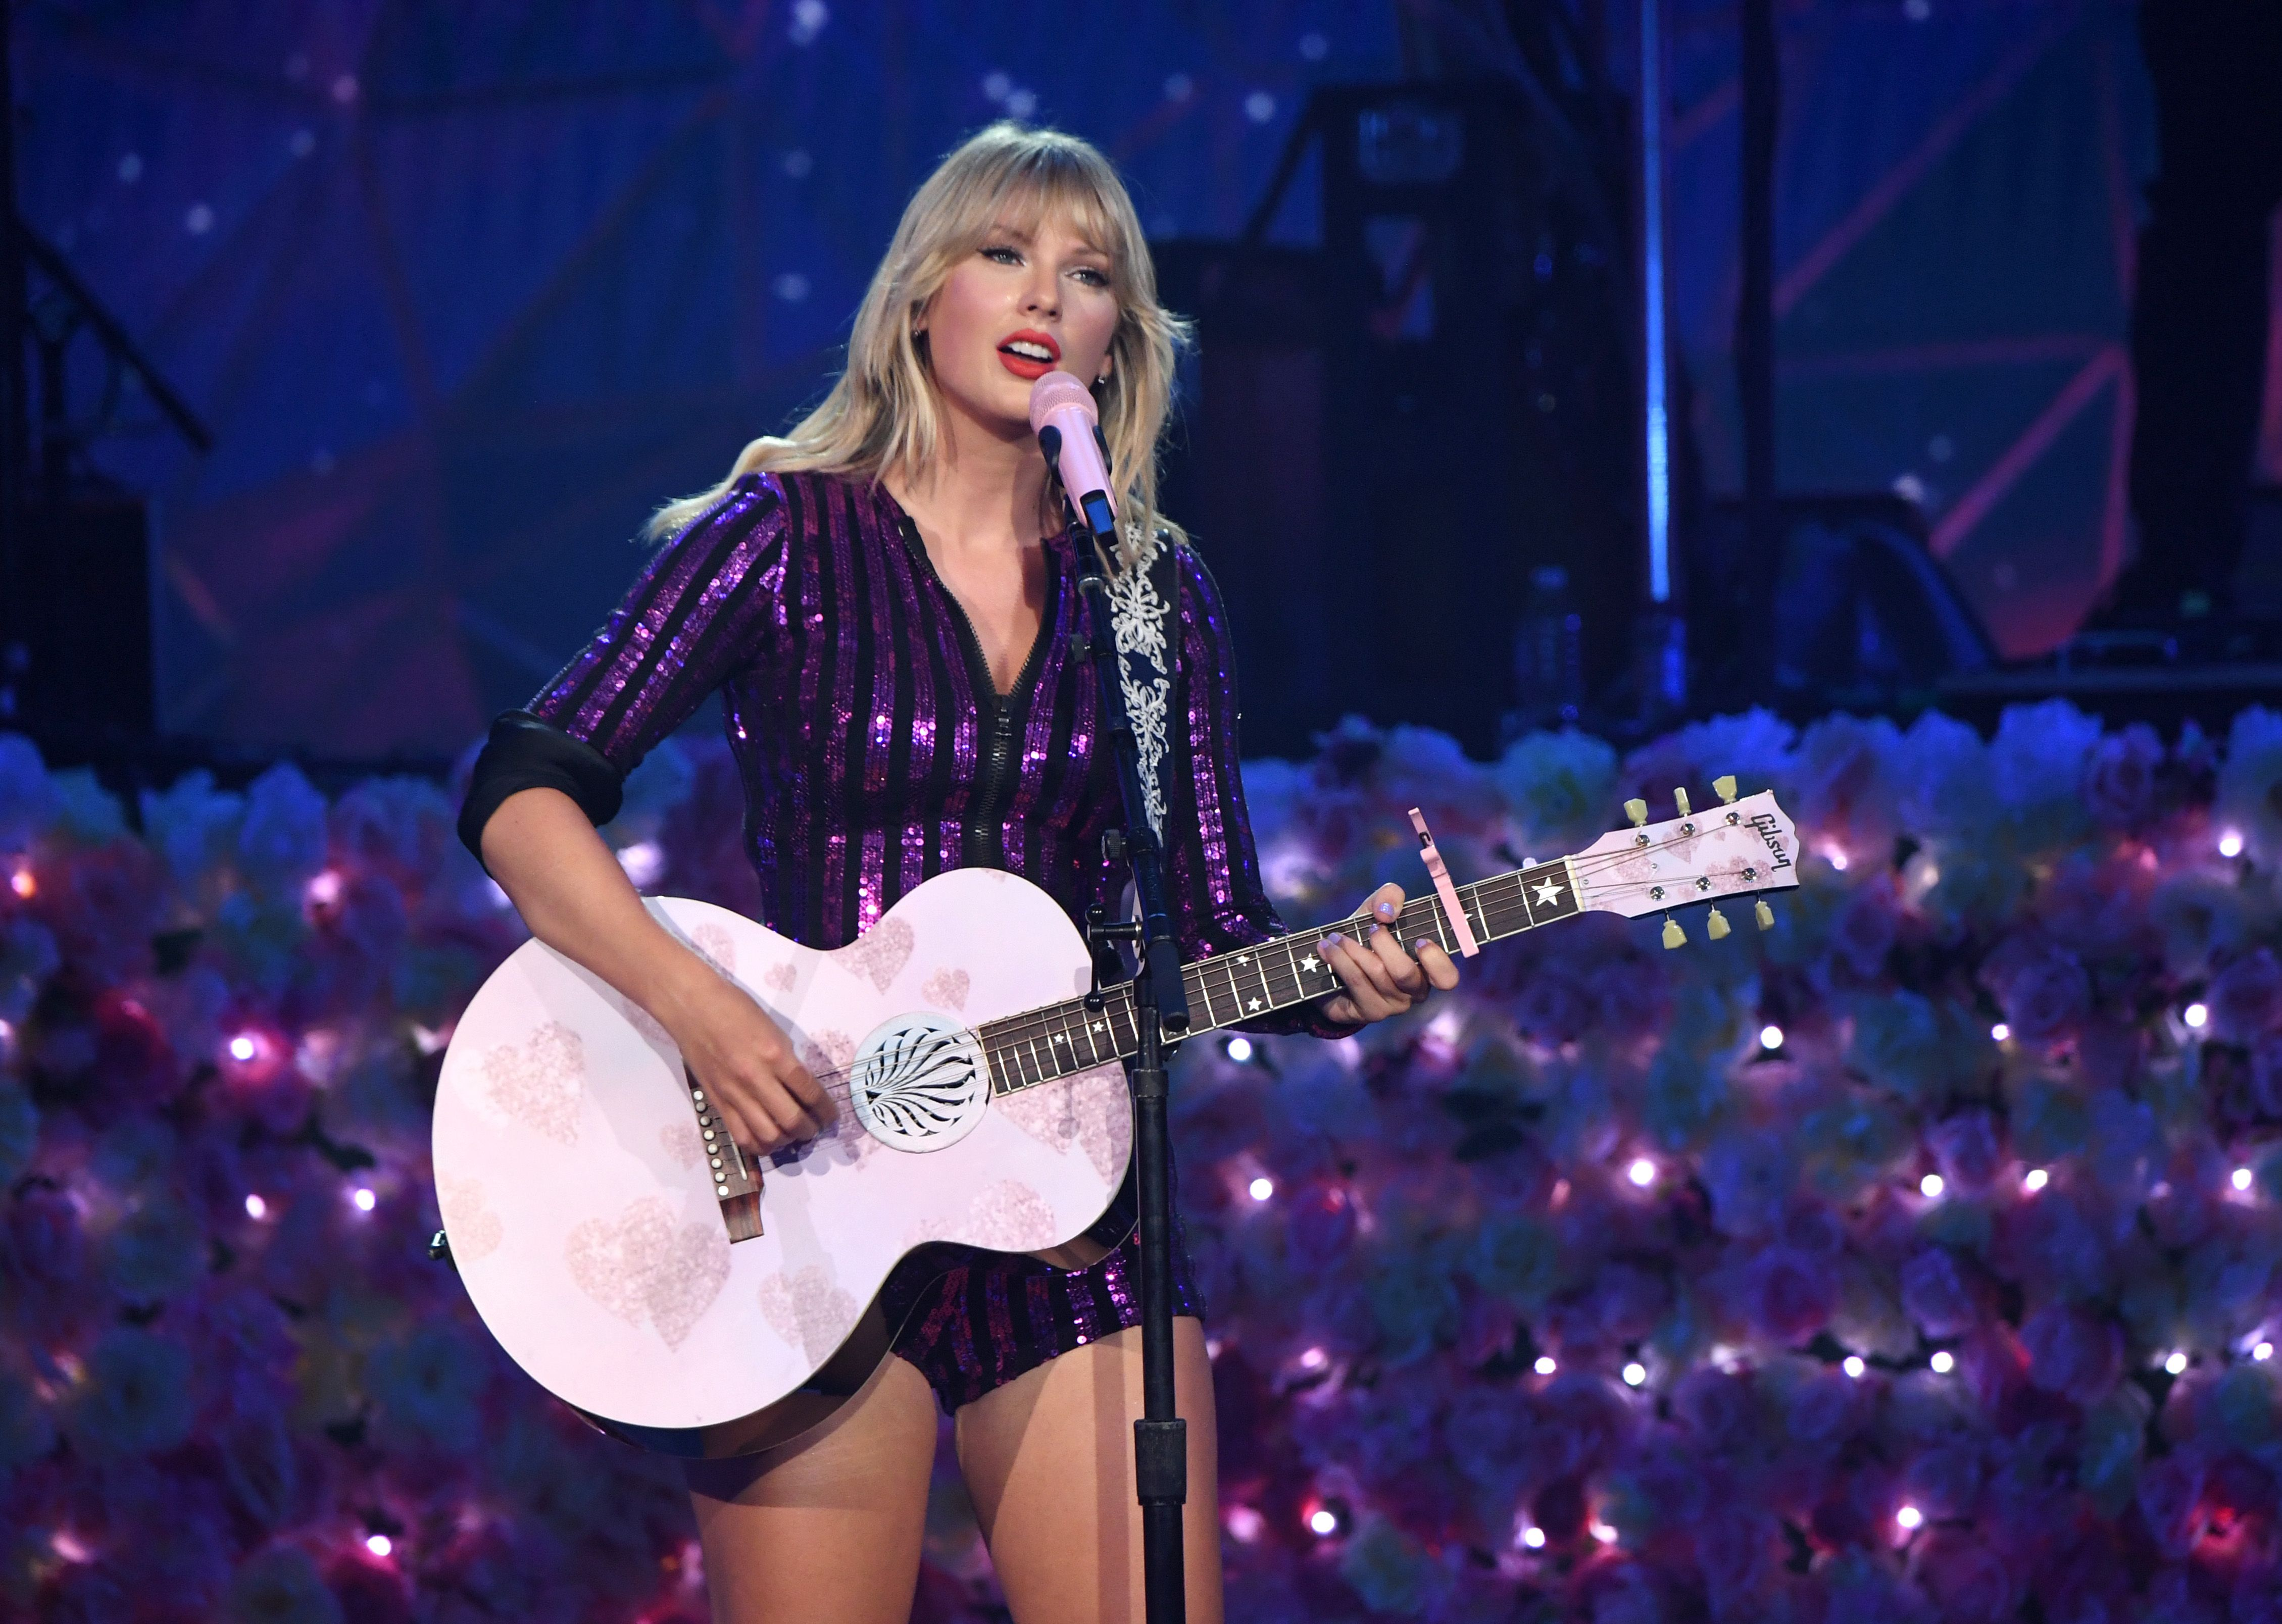 Taylor Swift S Lover Lyrics Decoded Song Meaning